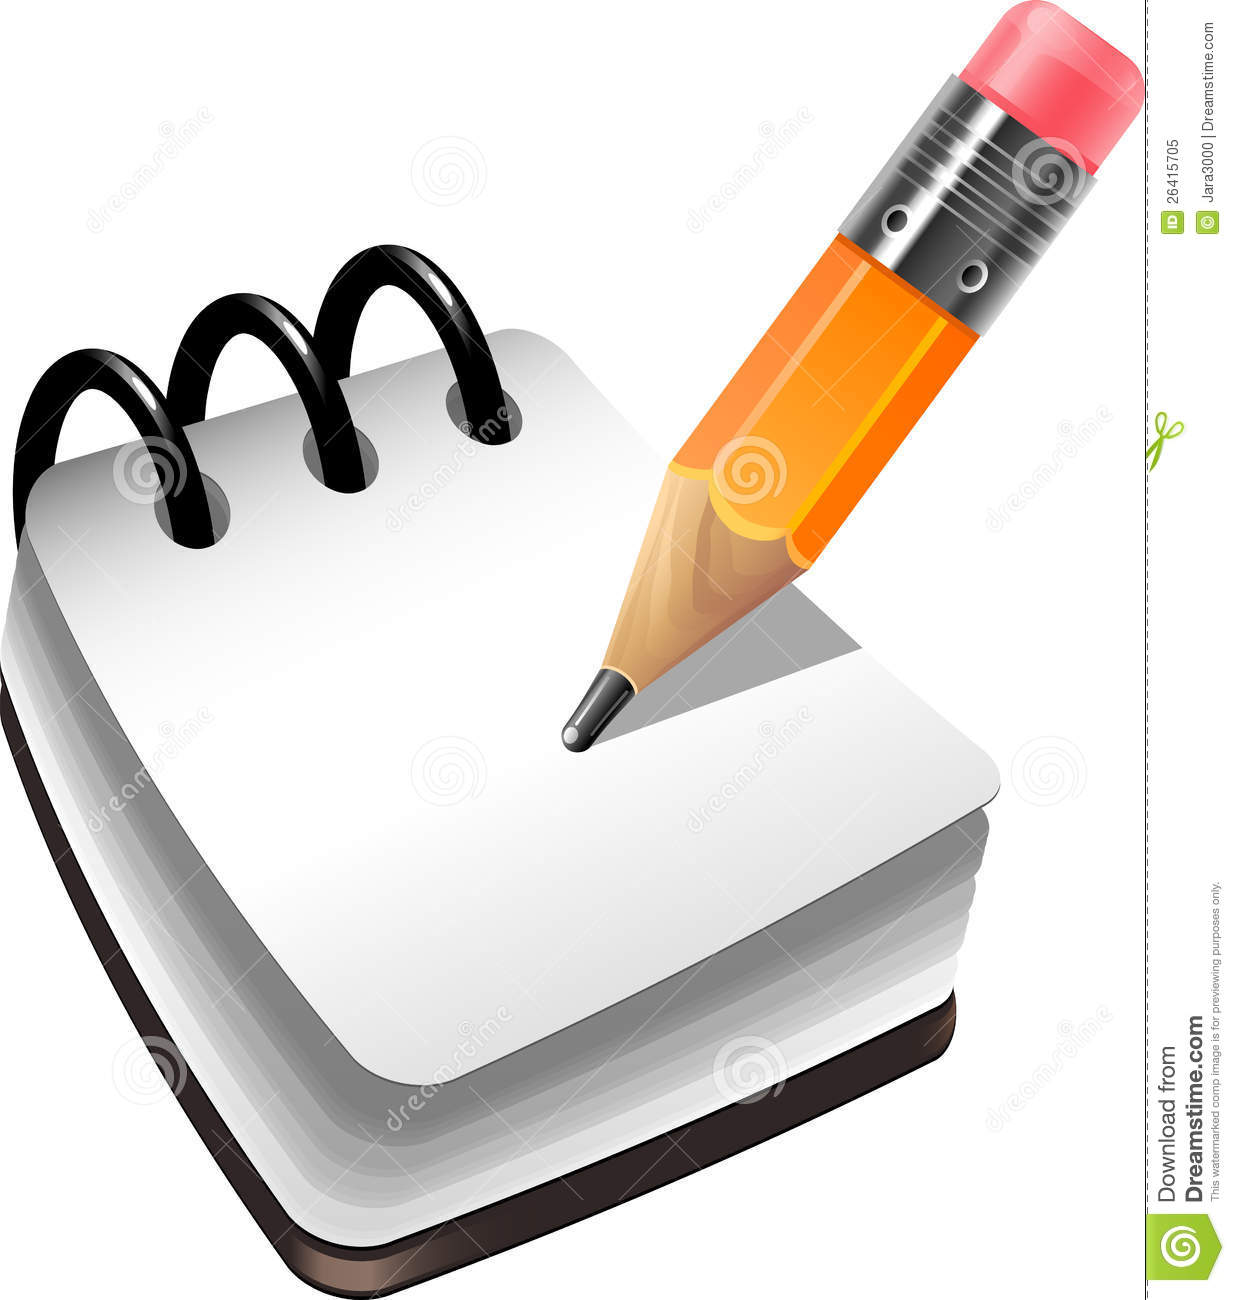 Notebook And Pencil Royalty Free Stock Photo - Image: 26415705